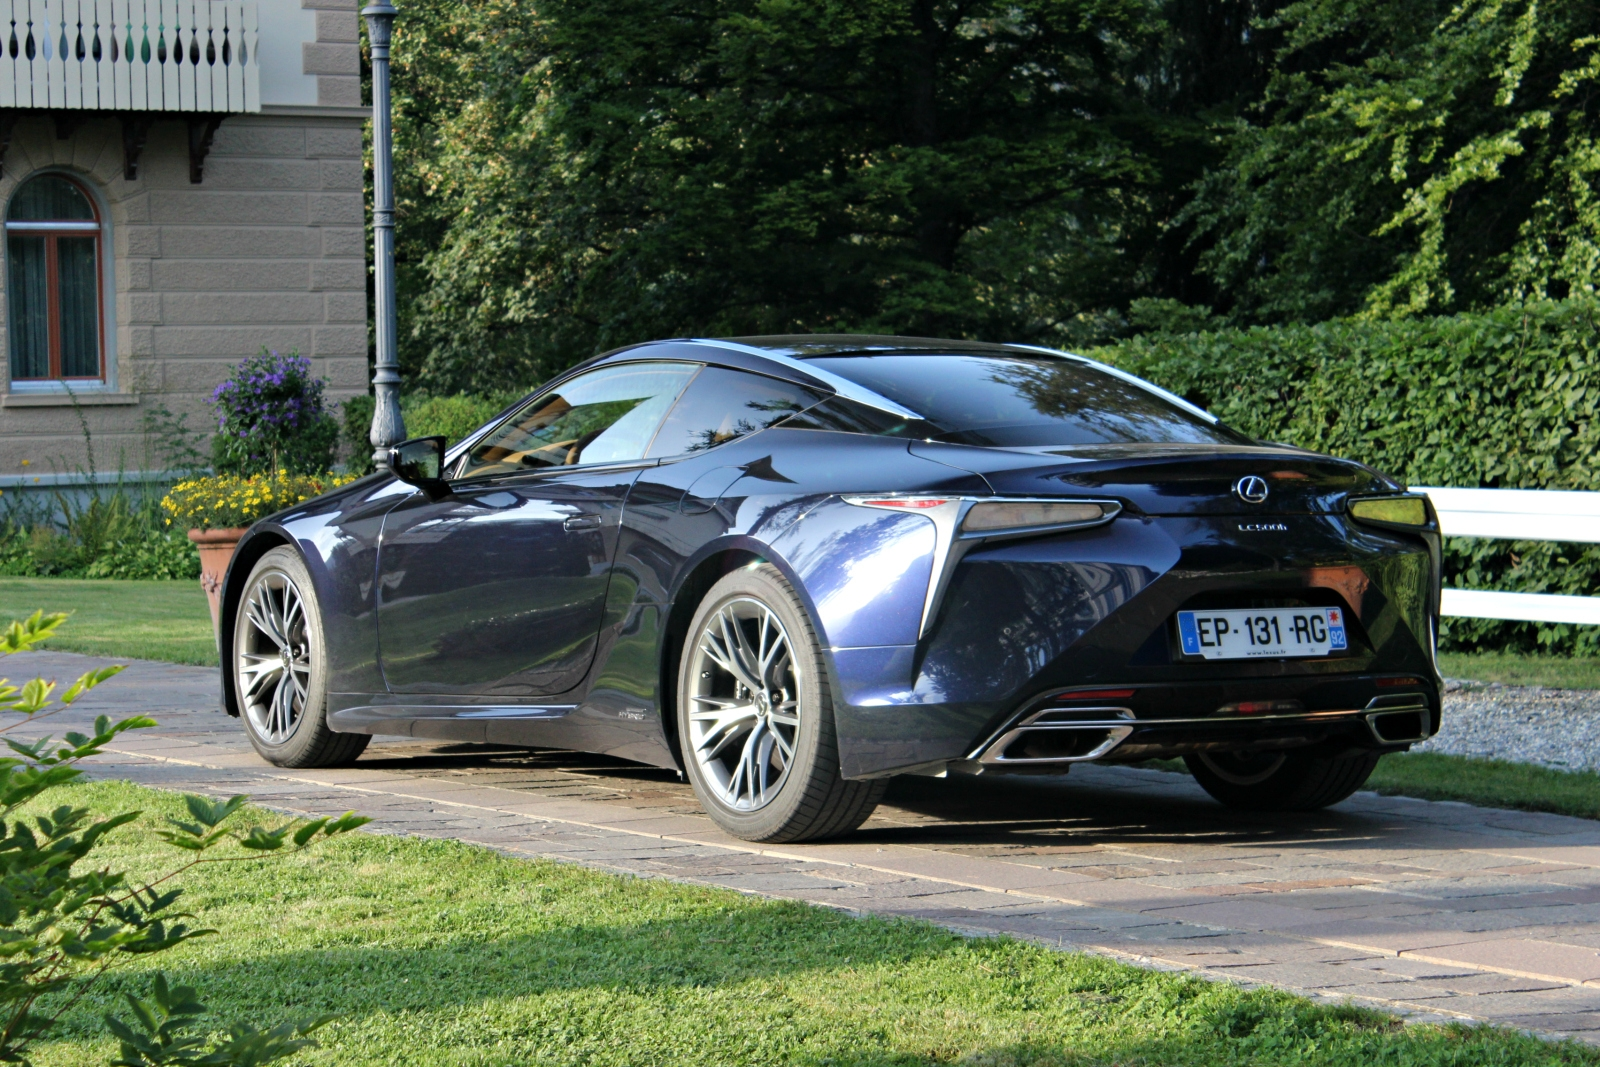 S0-essai-v​ideo-lexus​-lc-2017-l​a-gt-qui-s​ait-tout-f​aire-52739​8